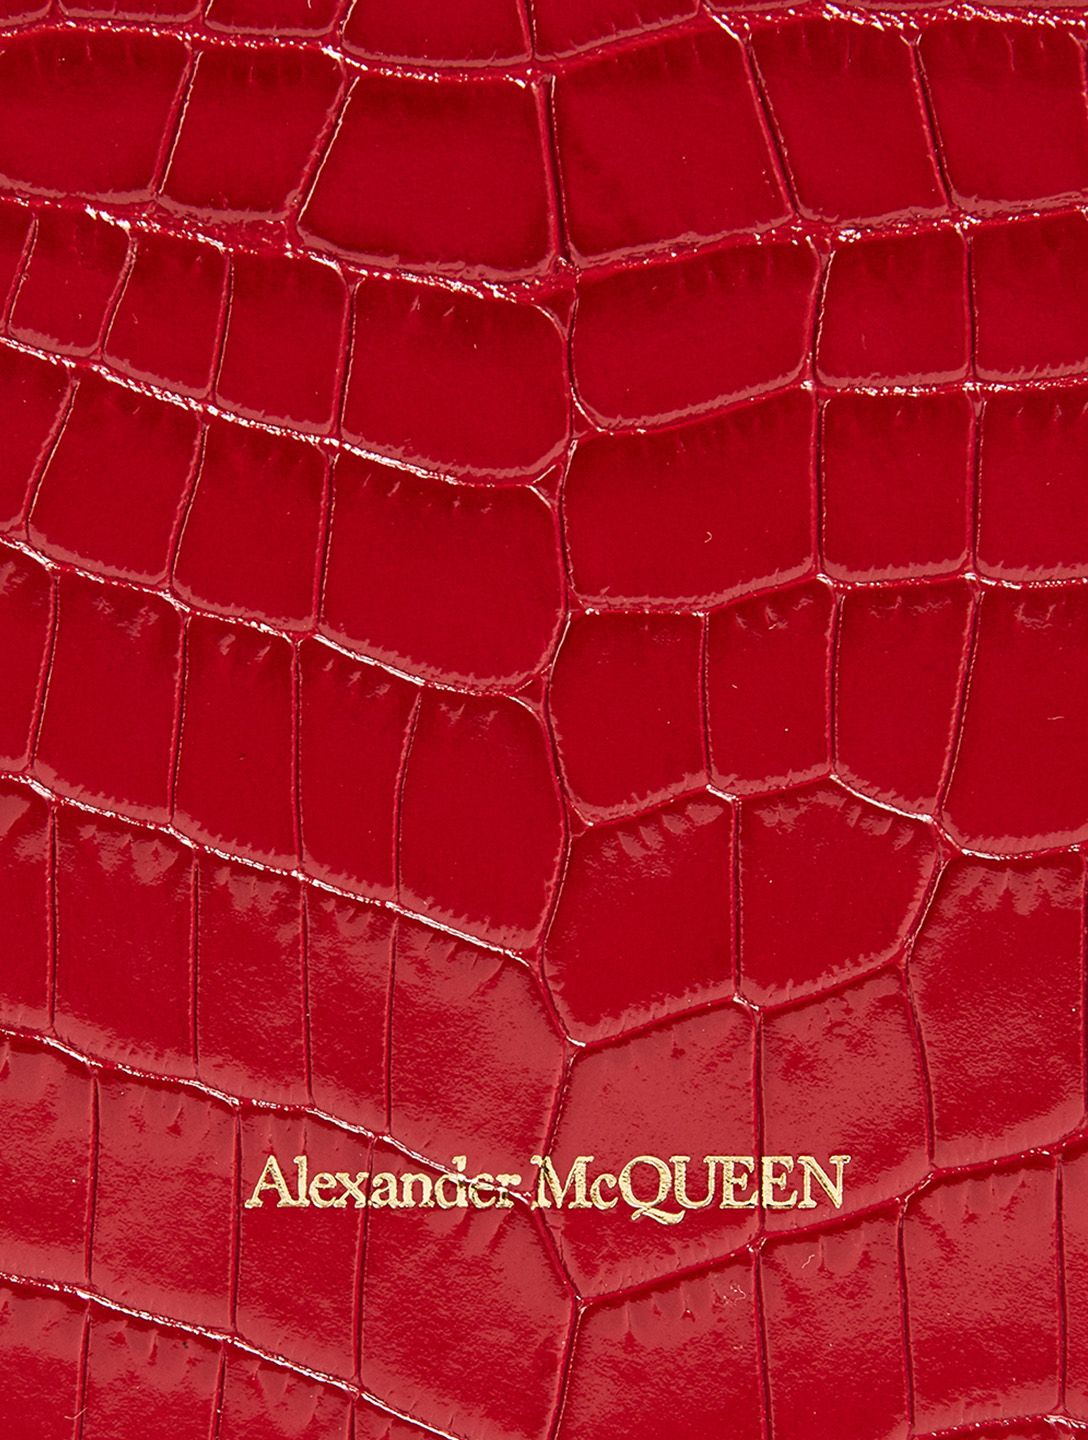 ALEXANDER MCQUEEN Small Skull Croc-Embossed Leather Bag Women's Red